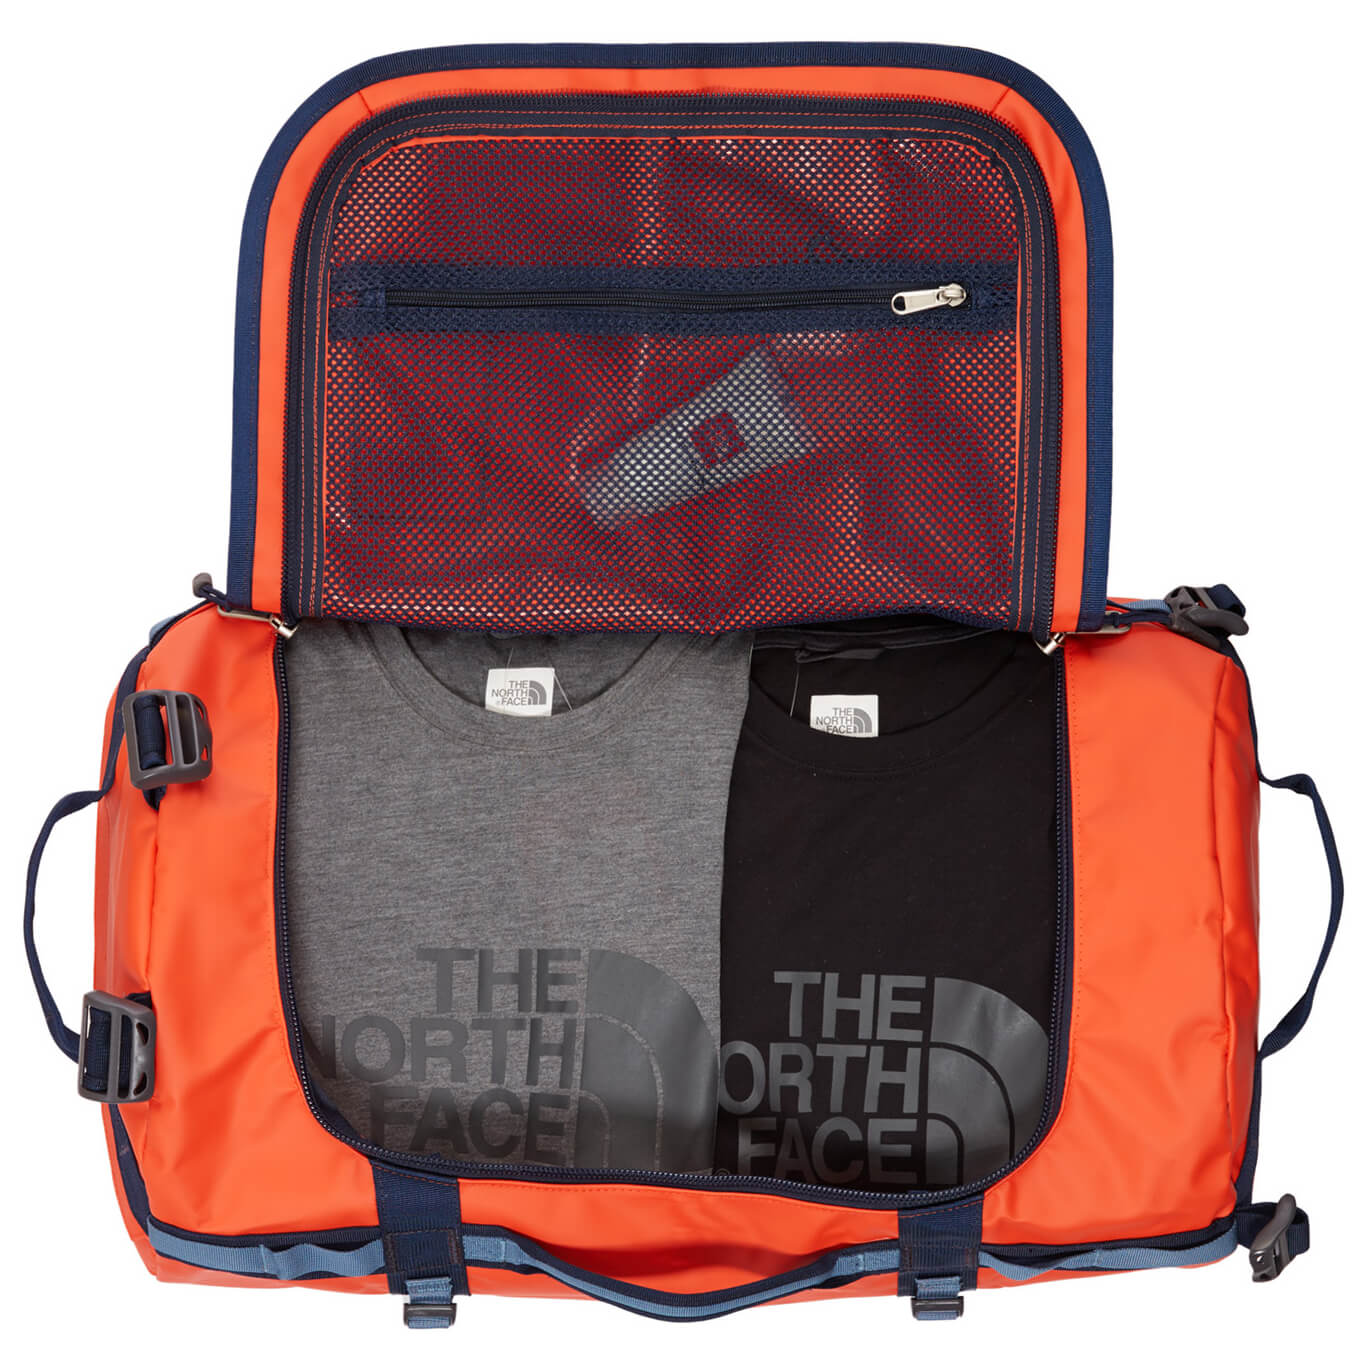 4823bb2b93 The North Face Base Camp Duffel Small - Sac de voyage | Achat en ...